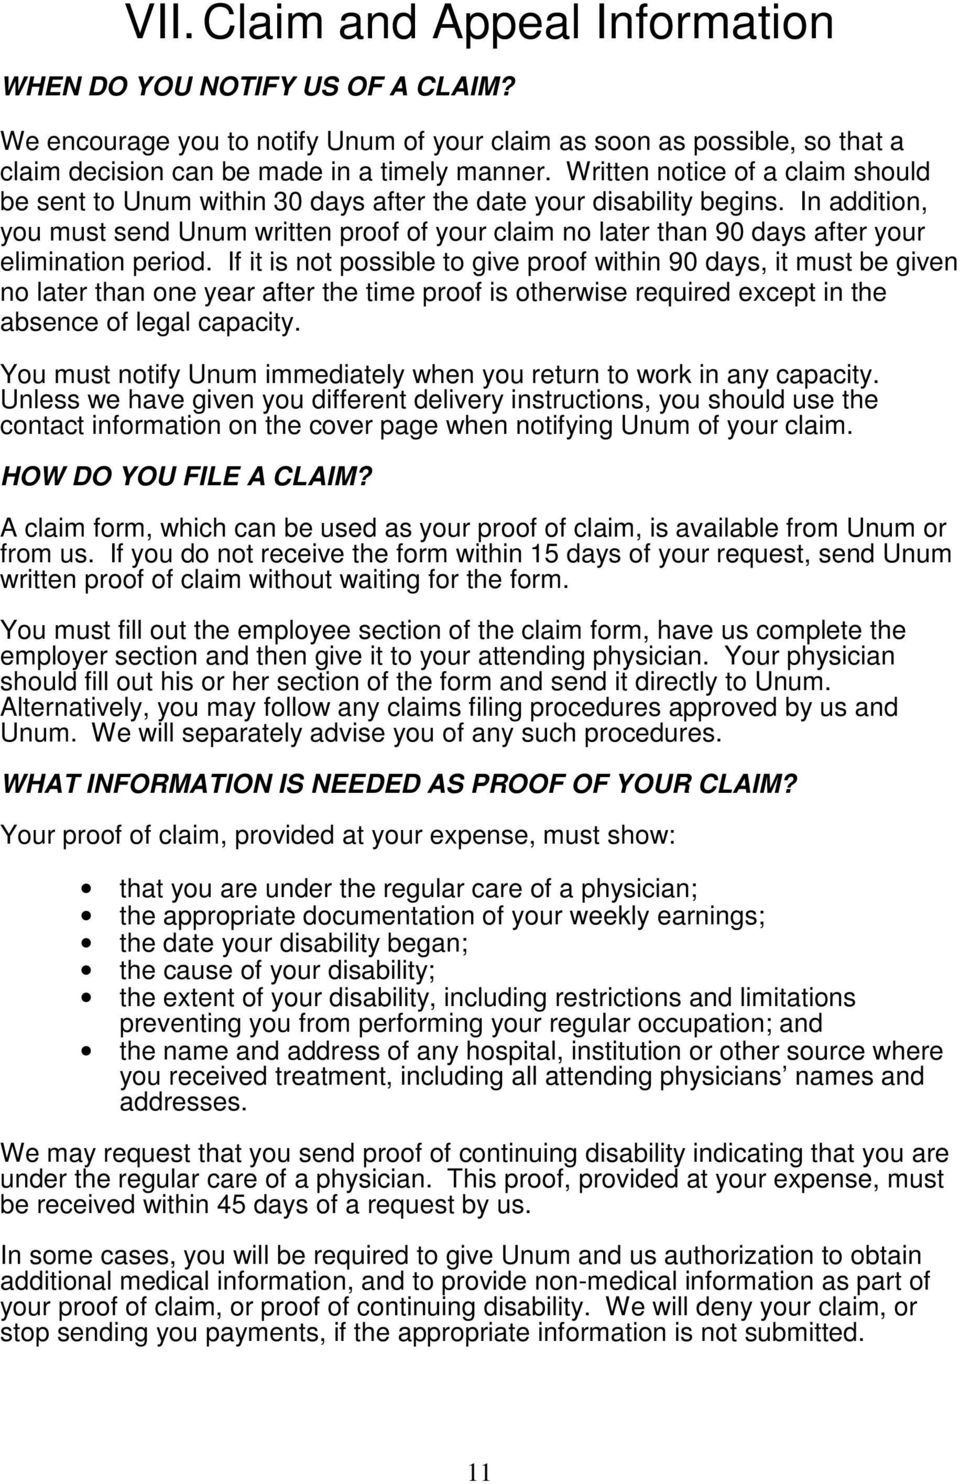 In addition, you must send Unum written proof of your claim no later than 90 days after your elimination period.